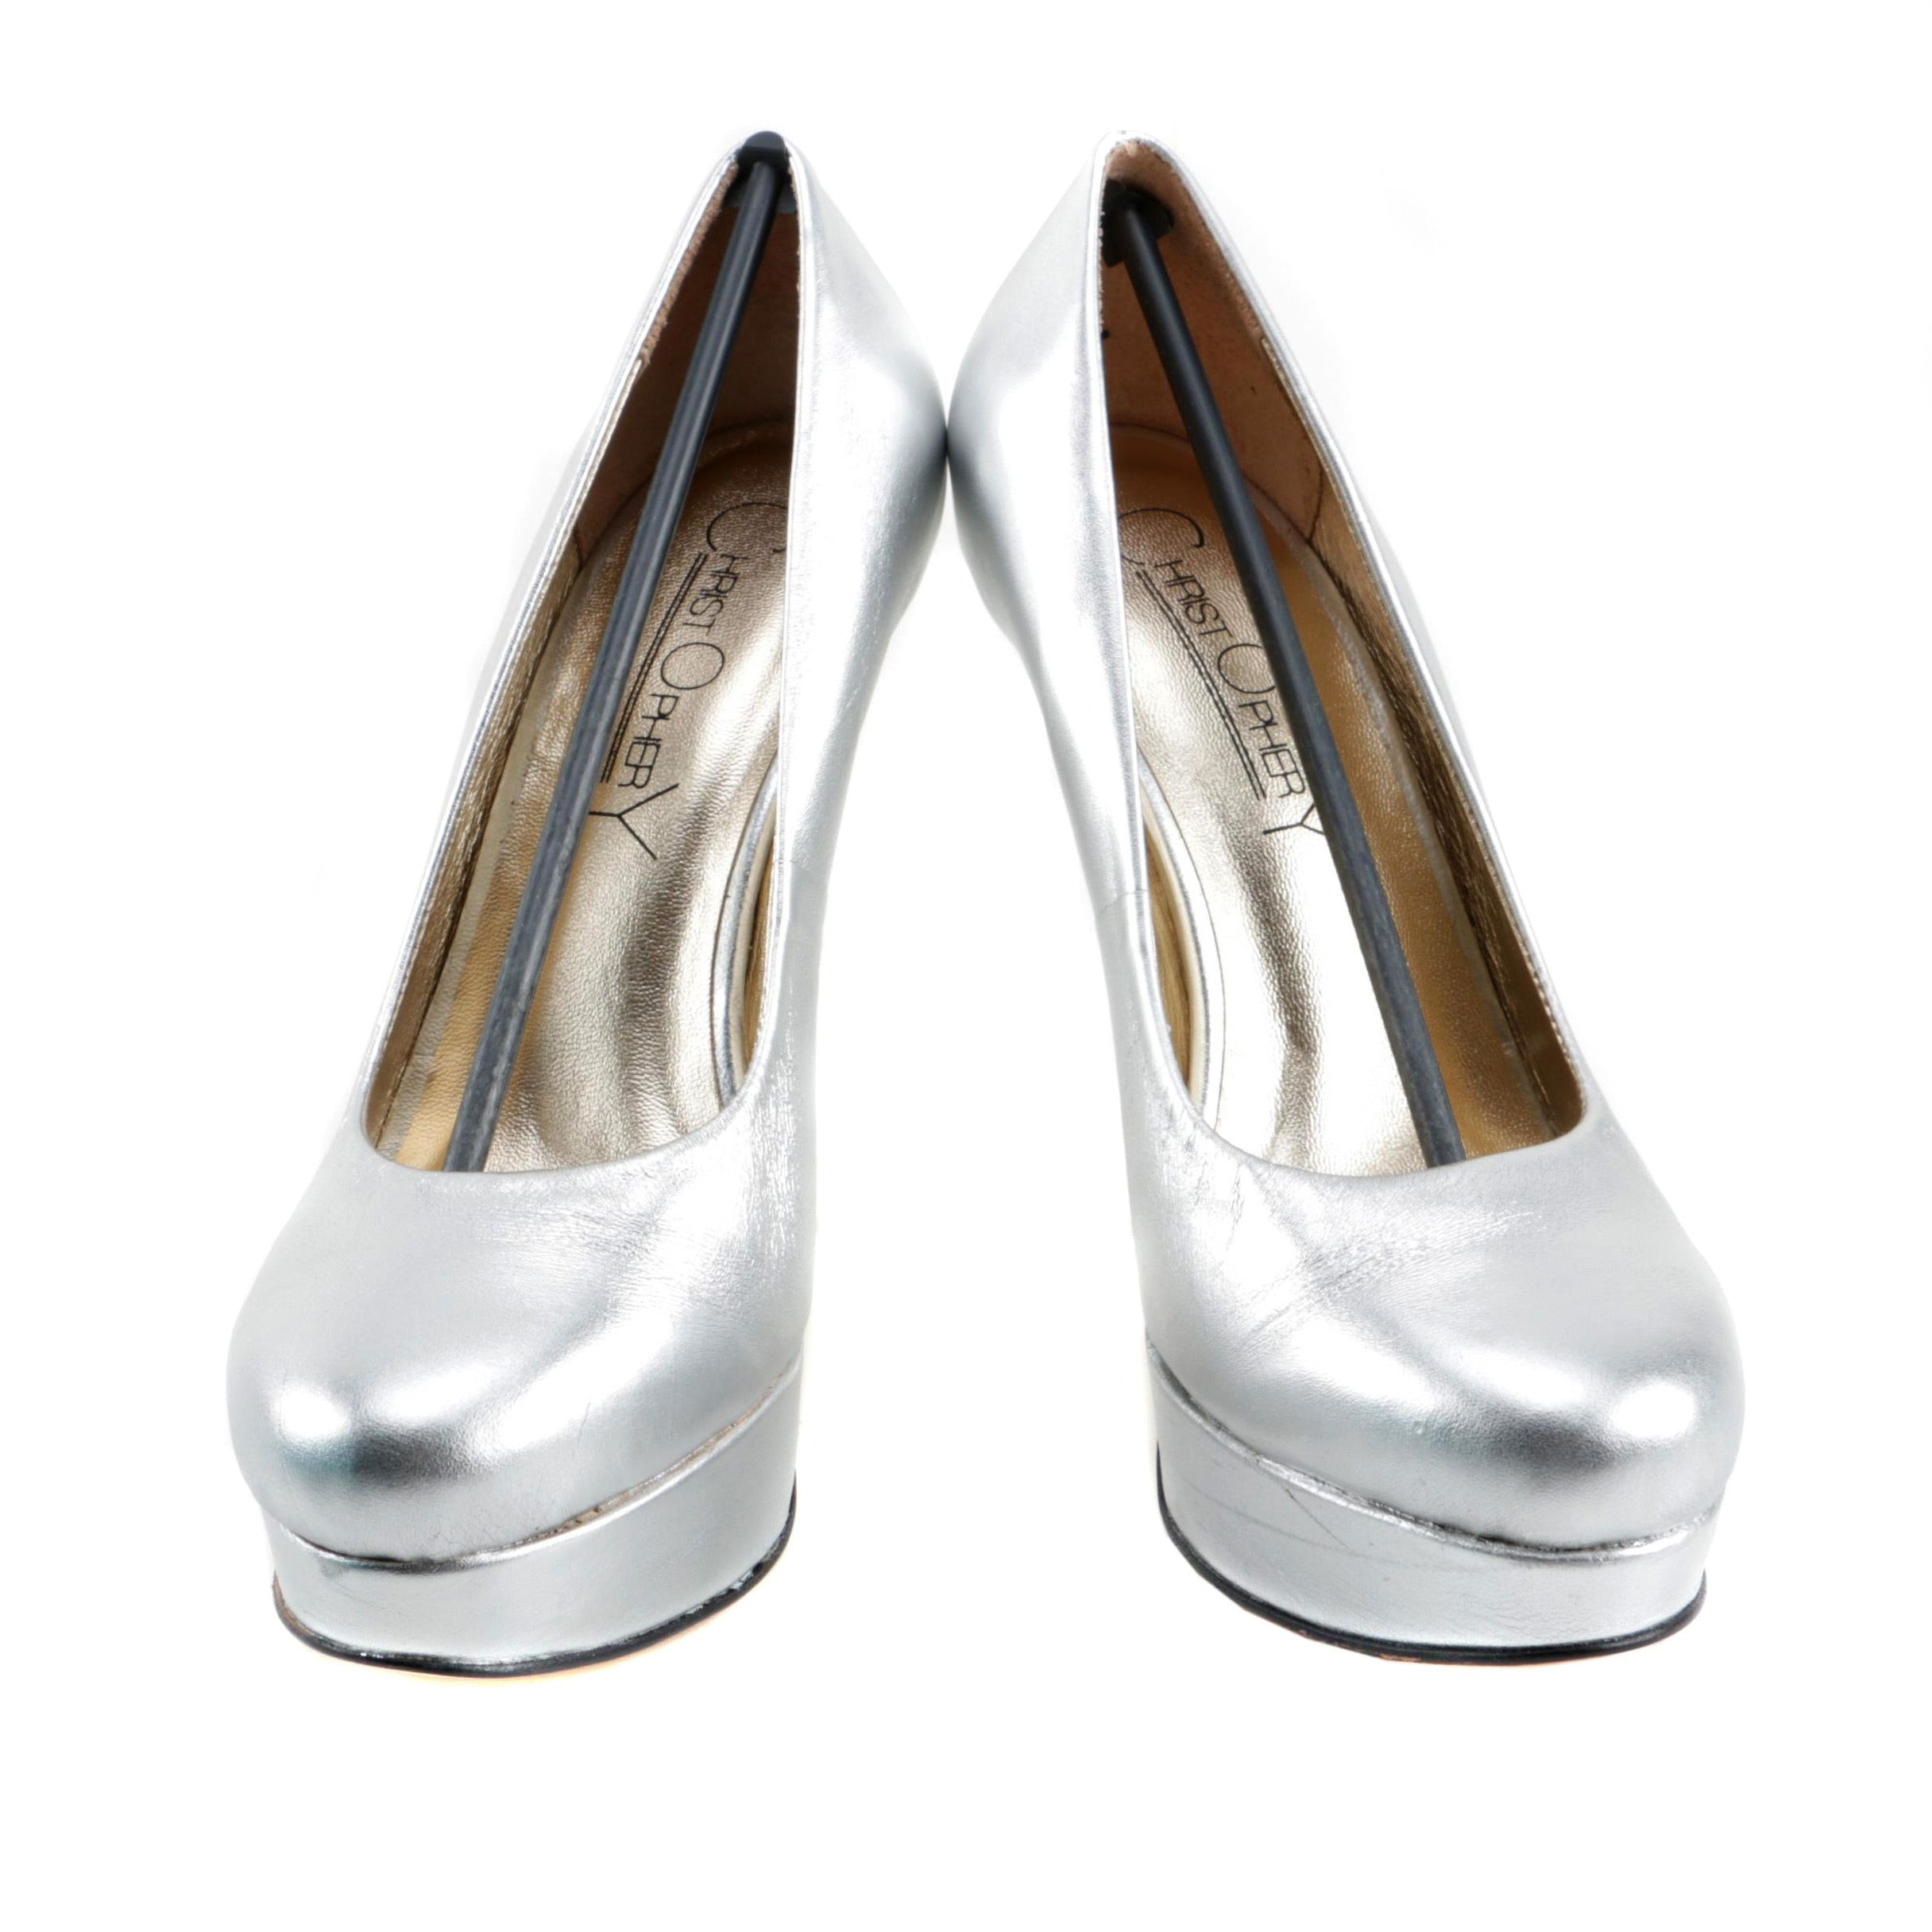 Christopher Coy Collection Prototype Heels in Metallic Silver Leather